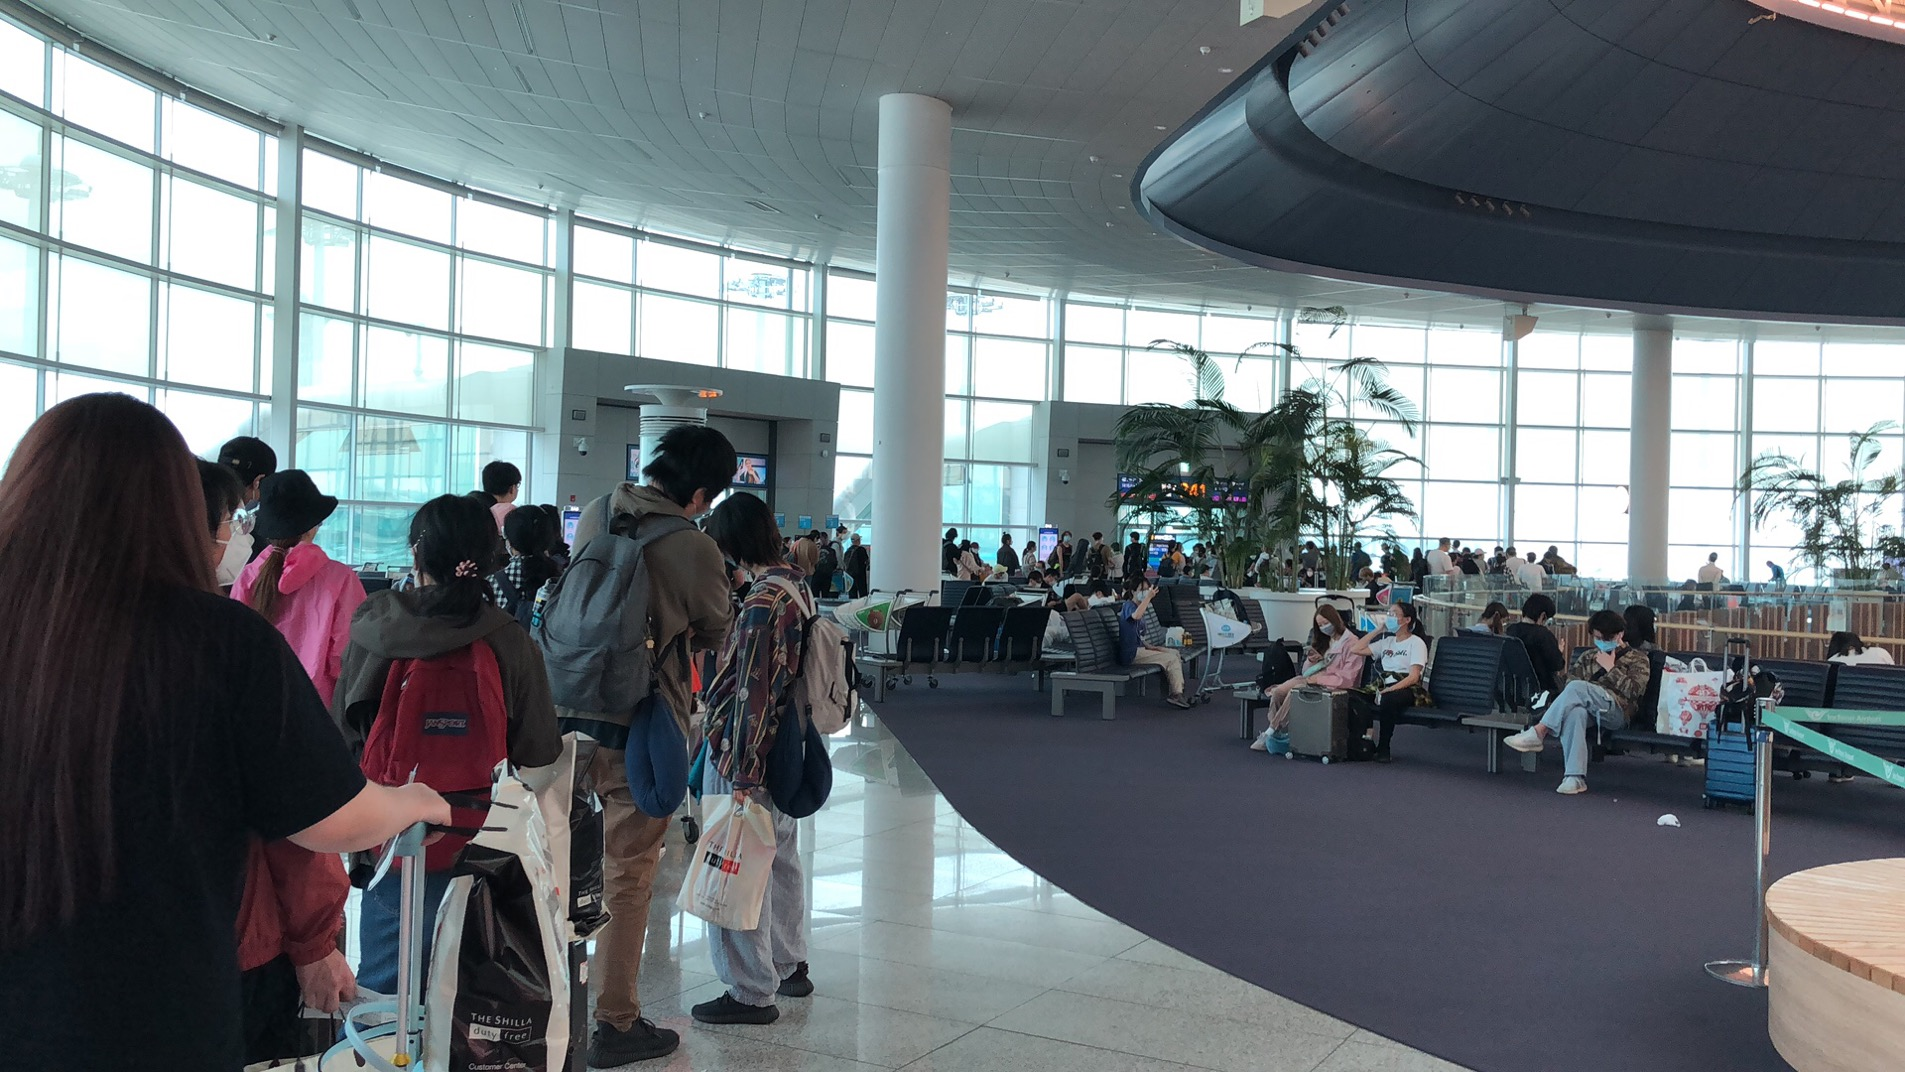 Passengers lined up and prepared to board the flight back to China.